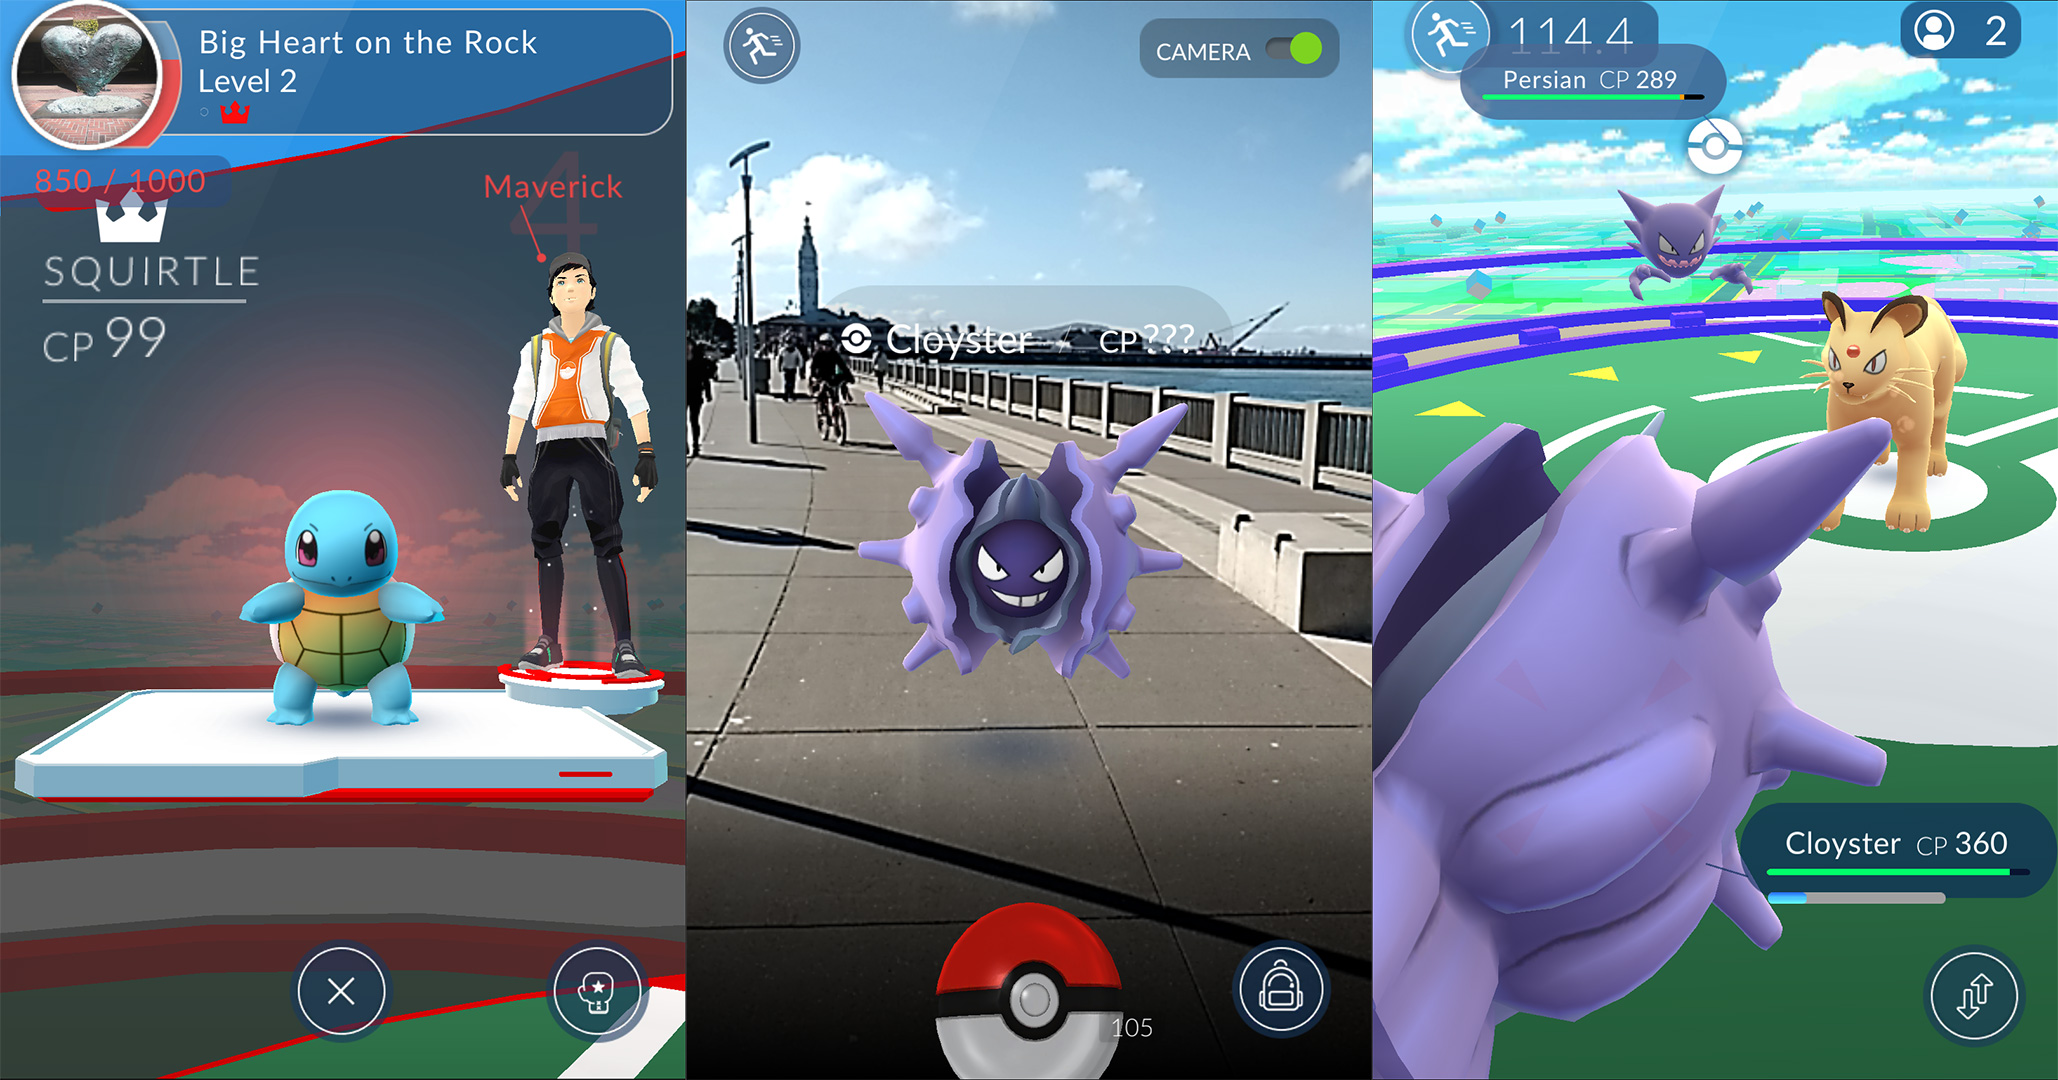 Pokémon Go isn't about catching 'em all — it's about catching them together   Polygon